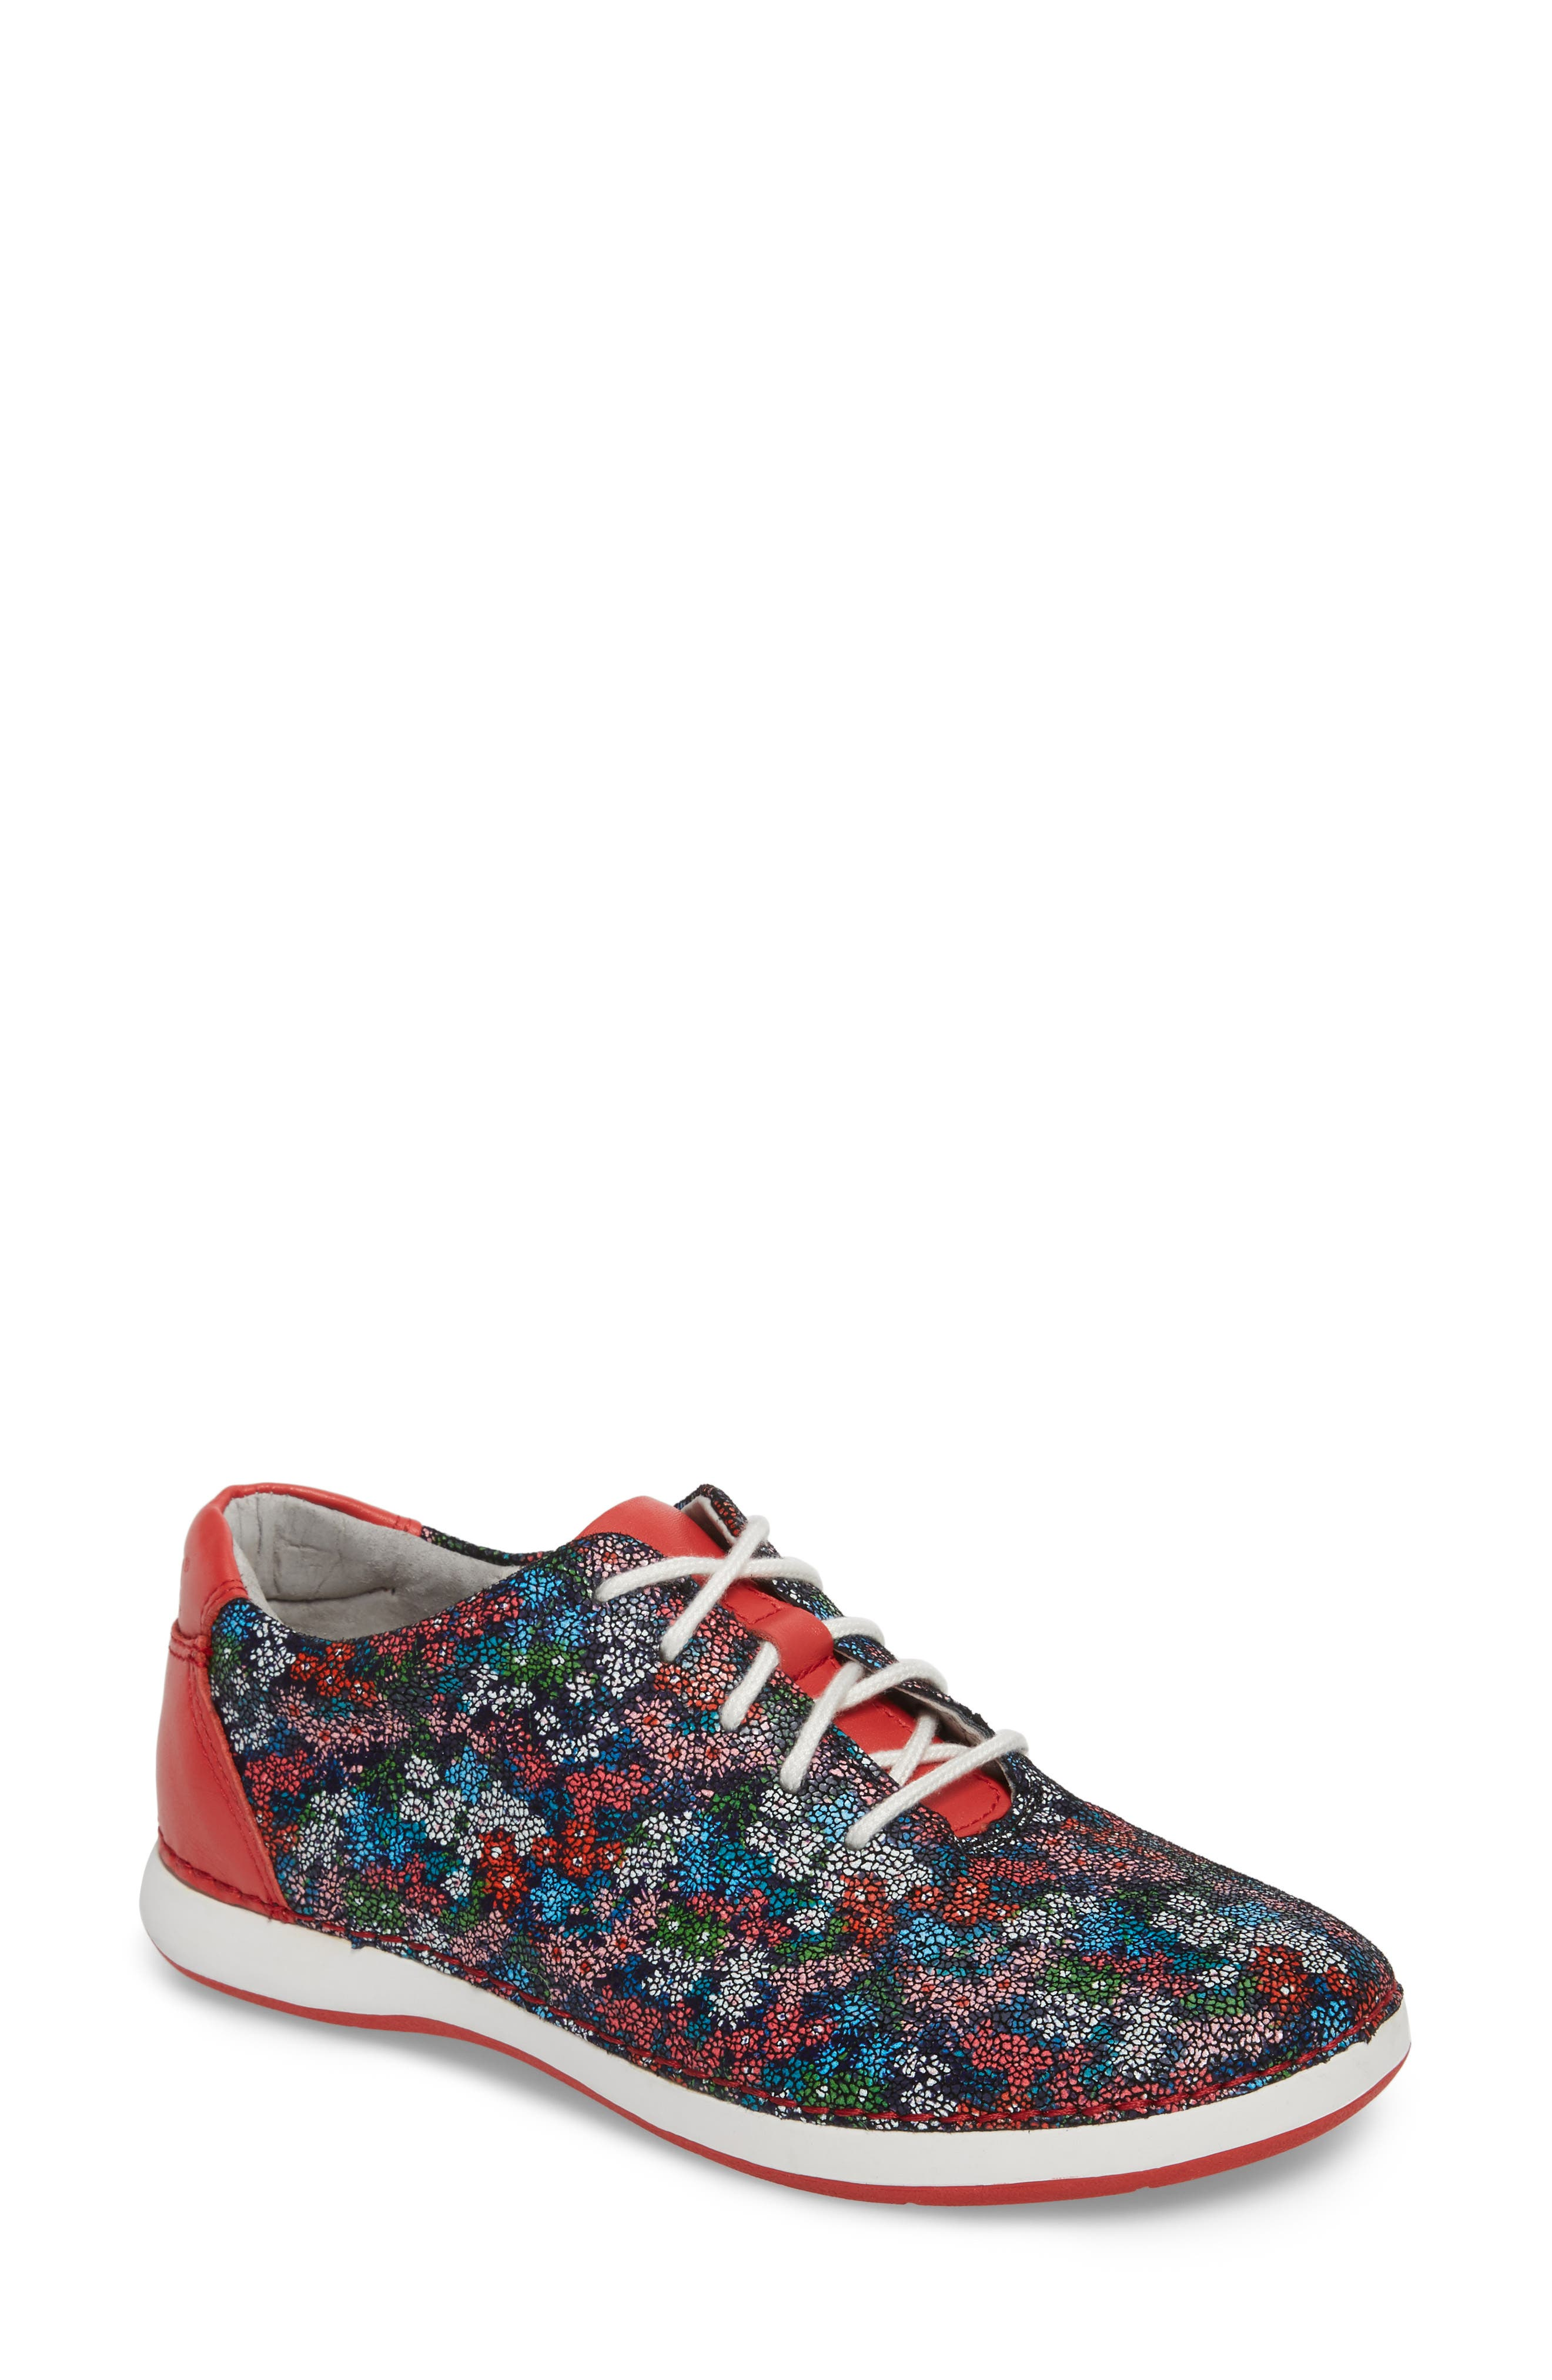 Essence Lace-Up Leather Oxford,                         Main,                         color, Botanncool Leather